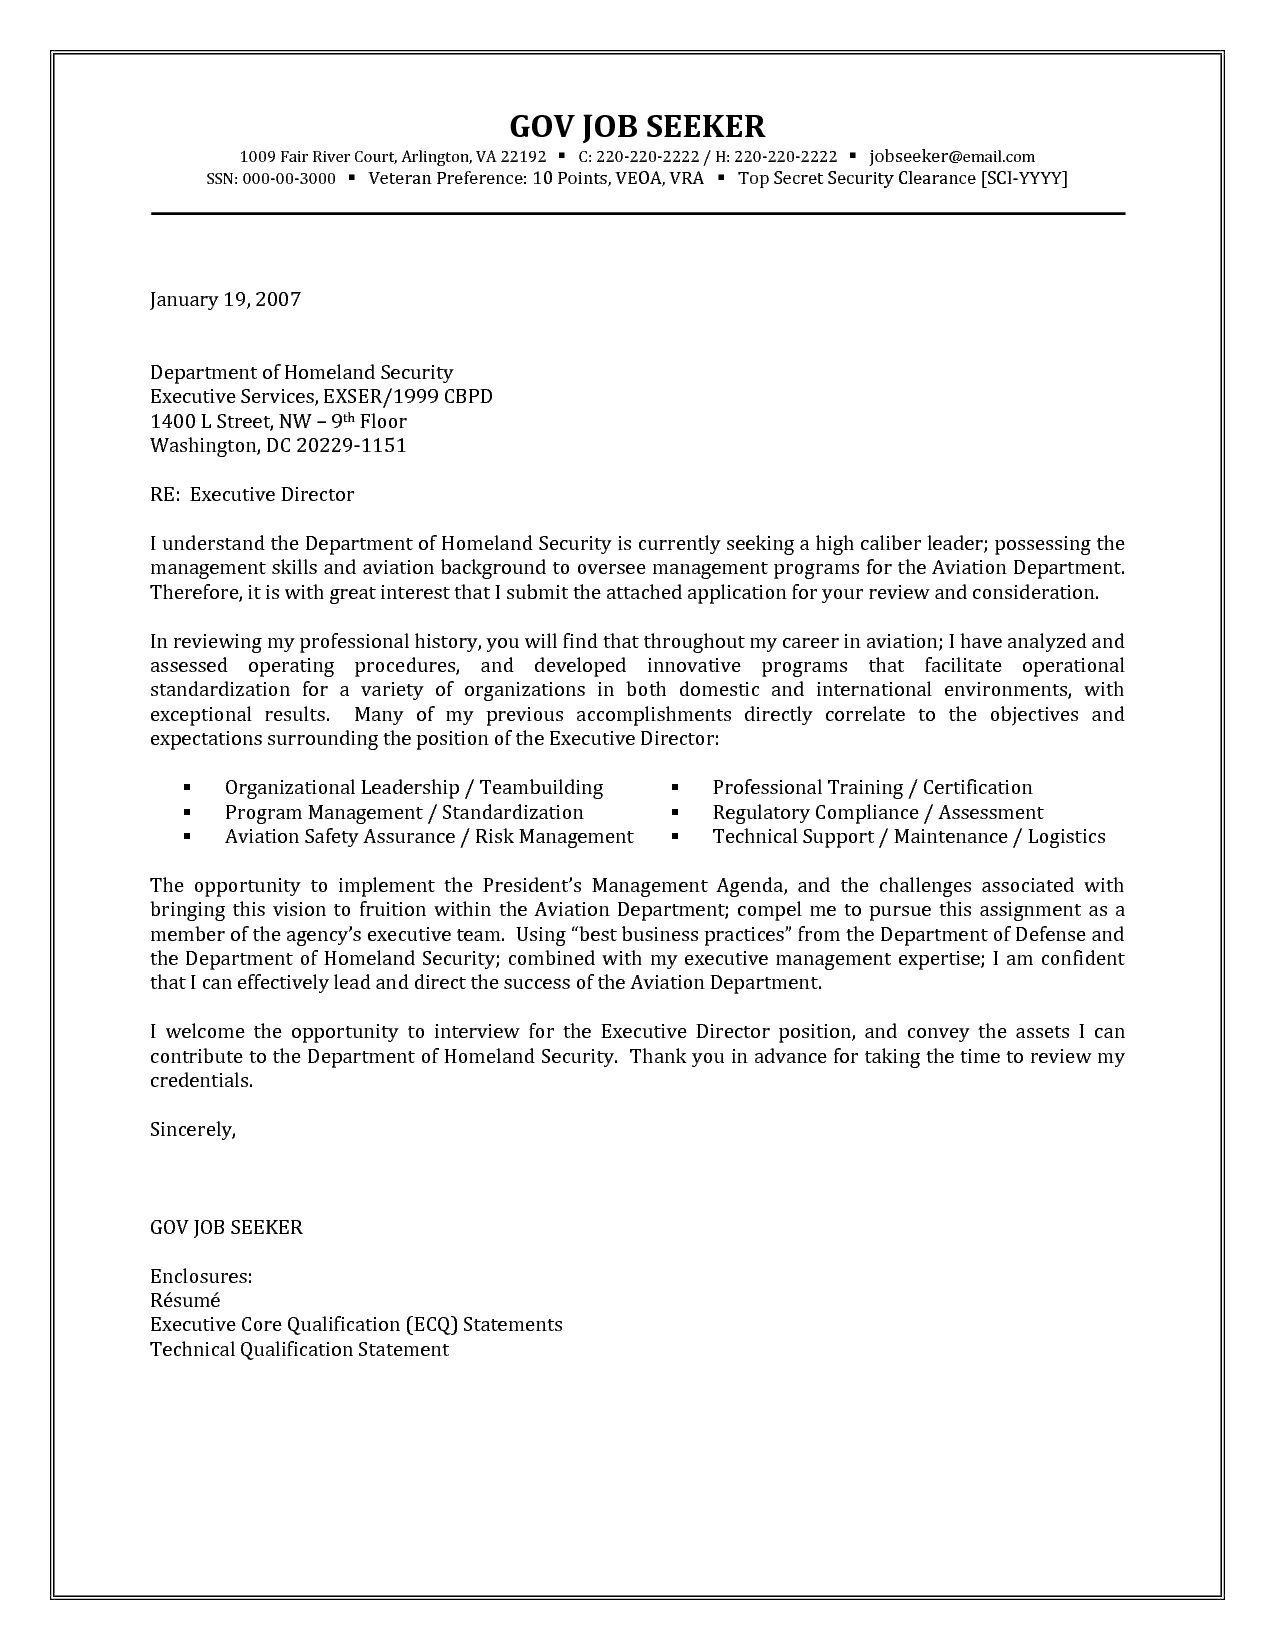 Sample Government Resume Government Resume Cover Letter Examples  Httpjobresumesample